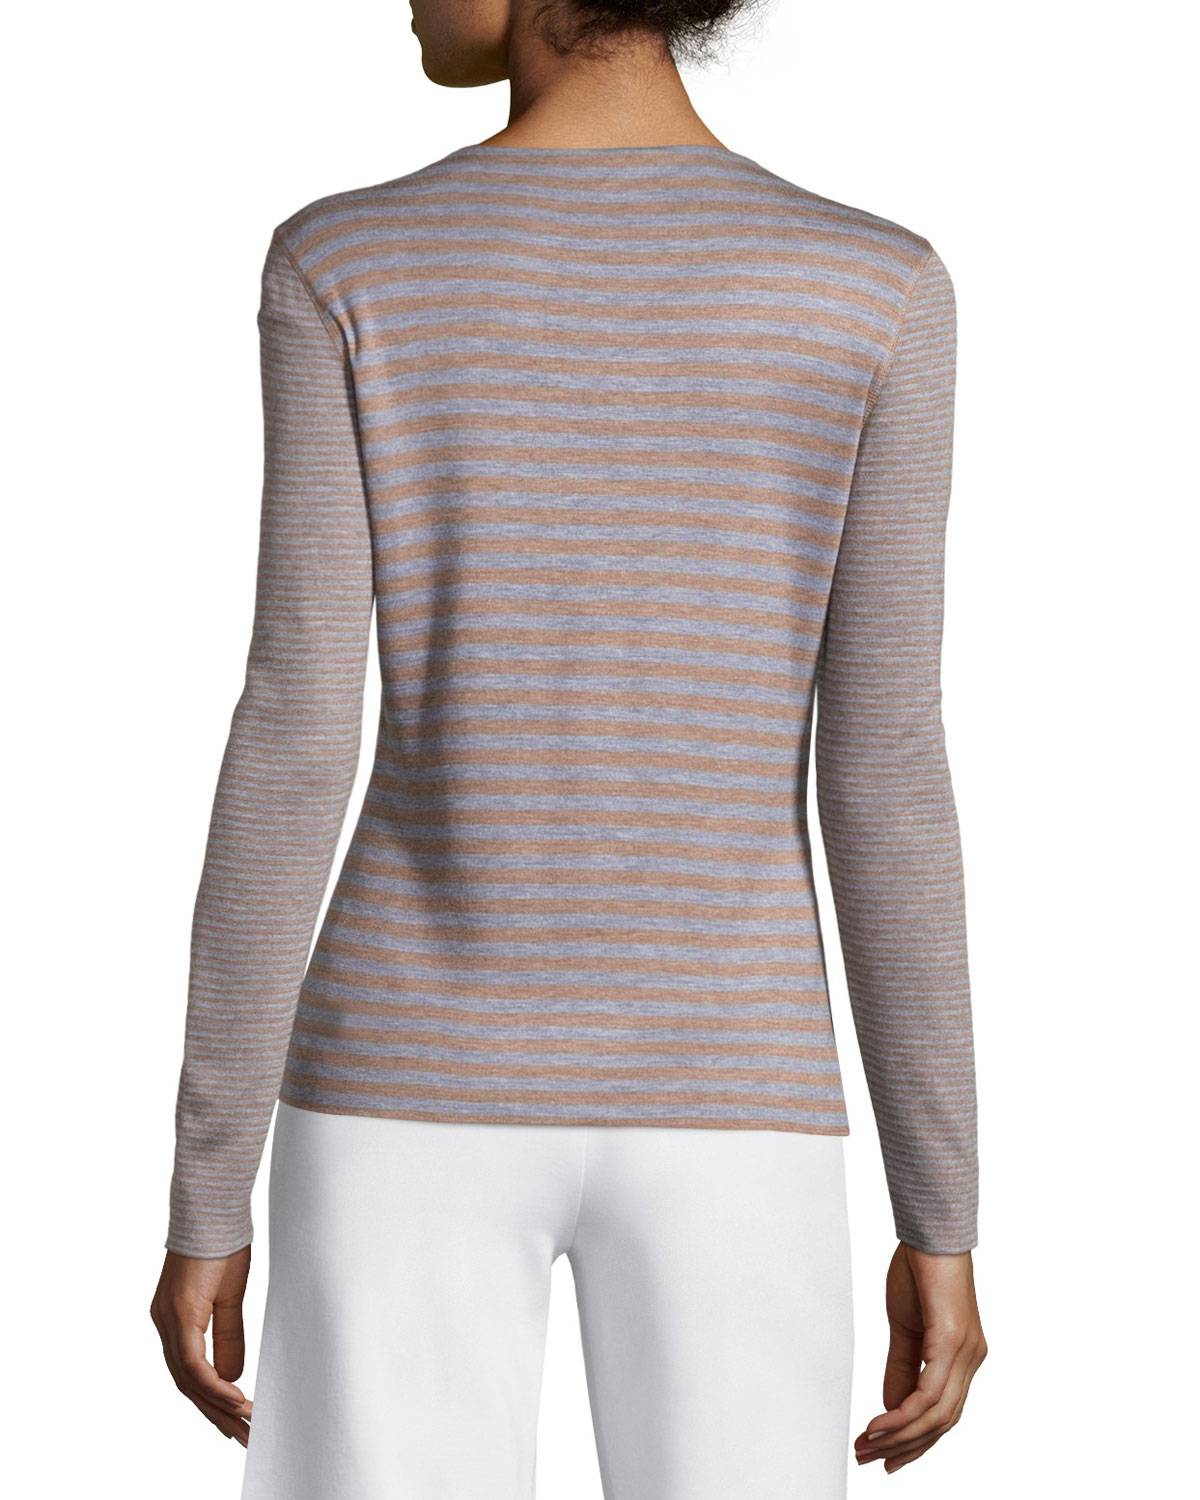 148 Best Images About Craft Ideas For Girls On Pinterest: Lafayette 148 New York Long-sleeve Striped Top In Pink